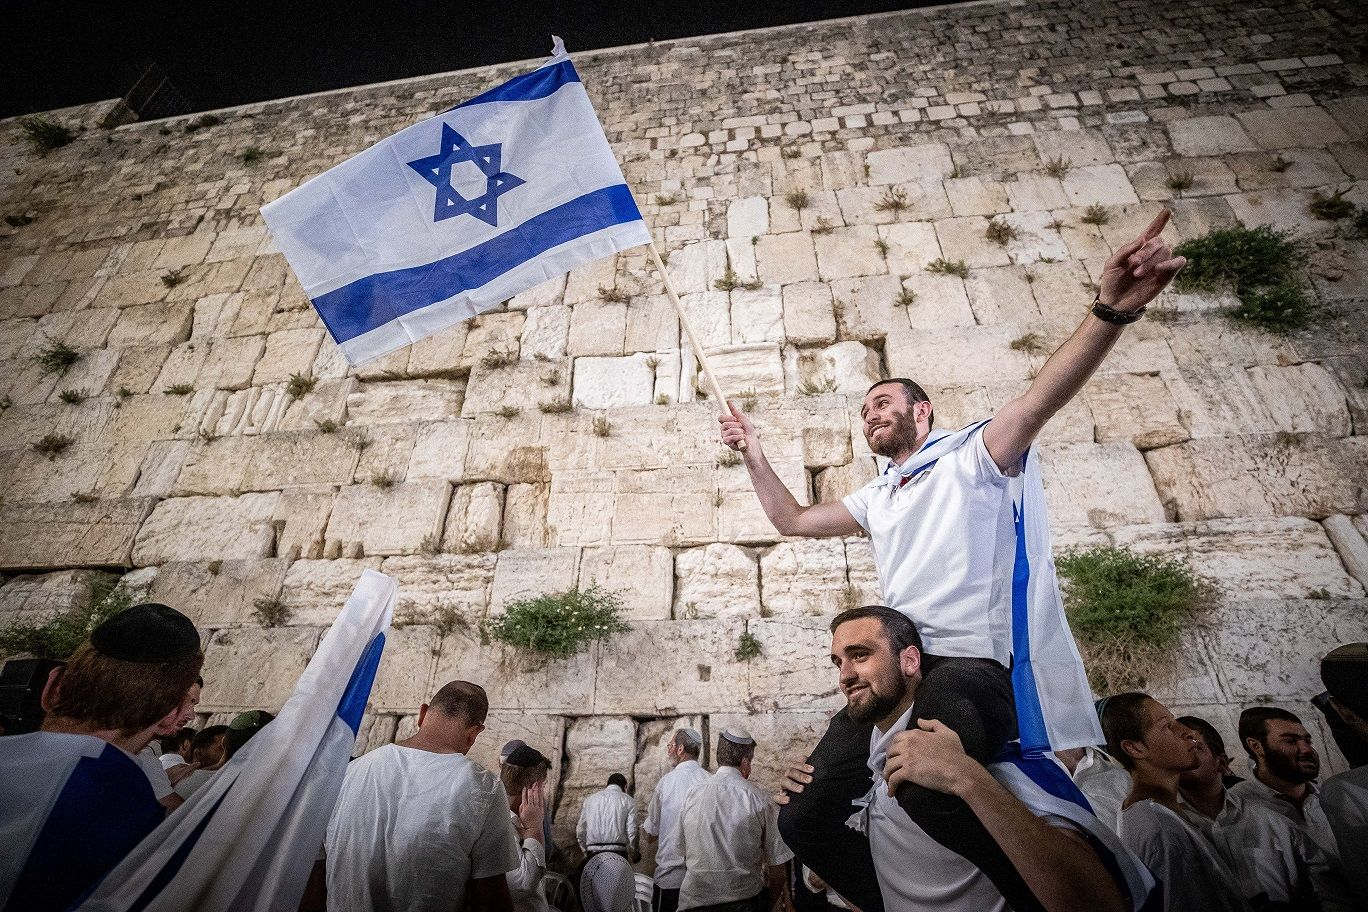 Jerusalem Flag March To Take Place As Decided, On June 15